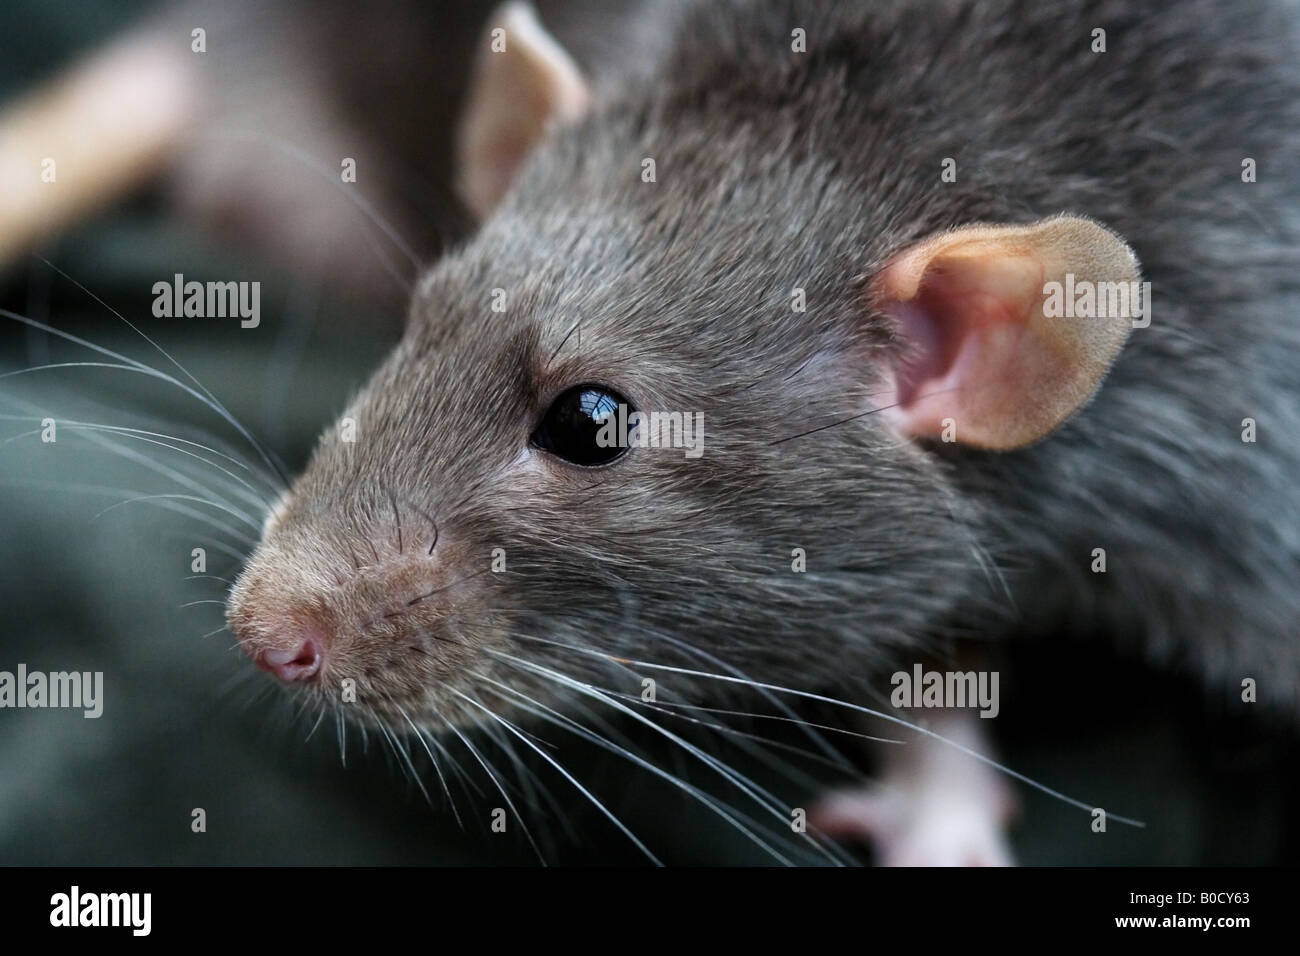 Grey rat - domestic pet.  Diagonally composed head and shoulders portrait with a blurred backgound. - Stock Image